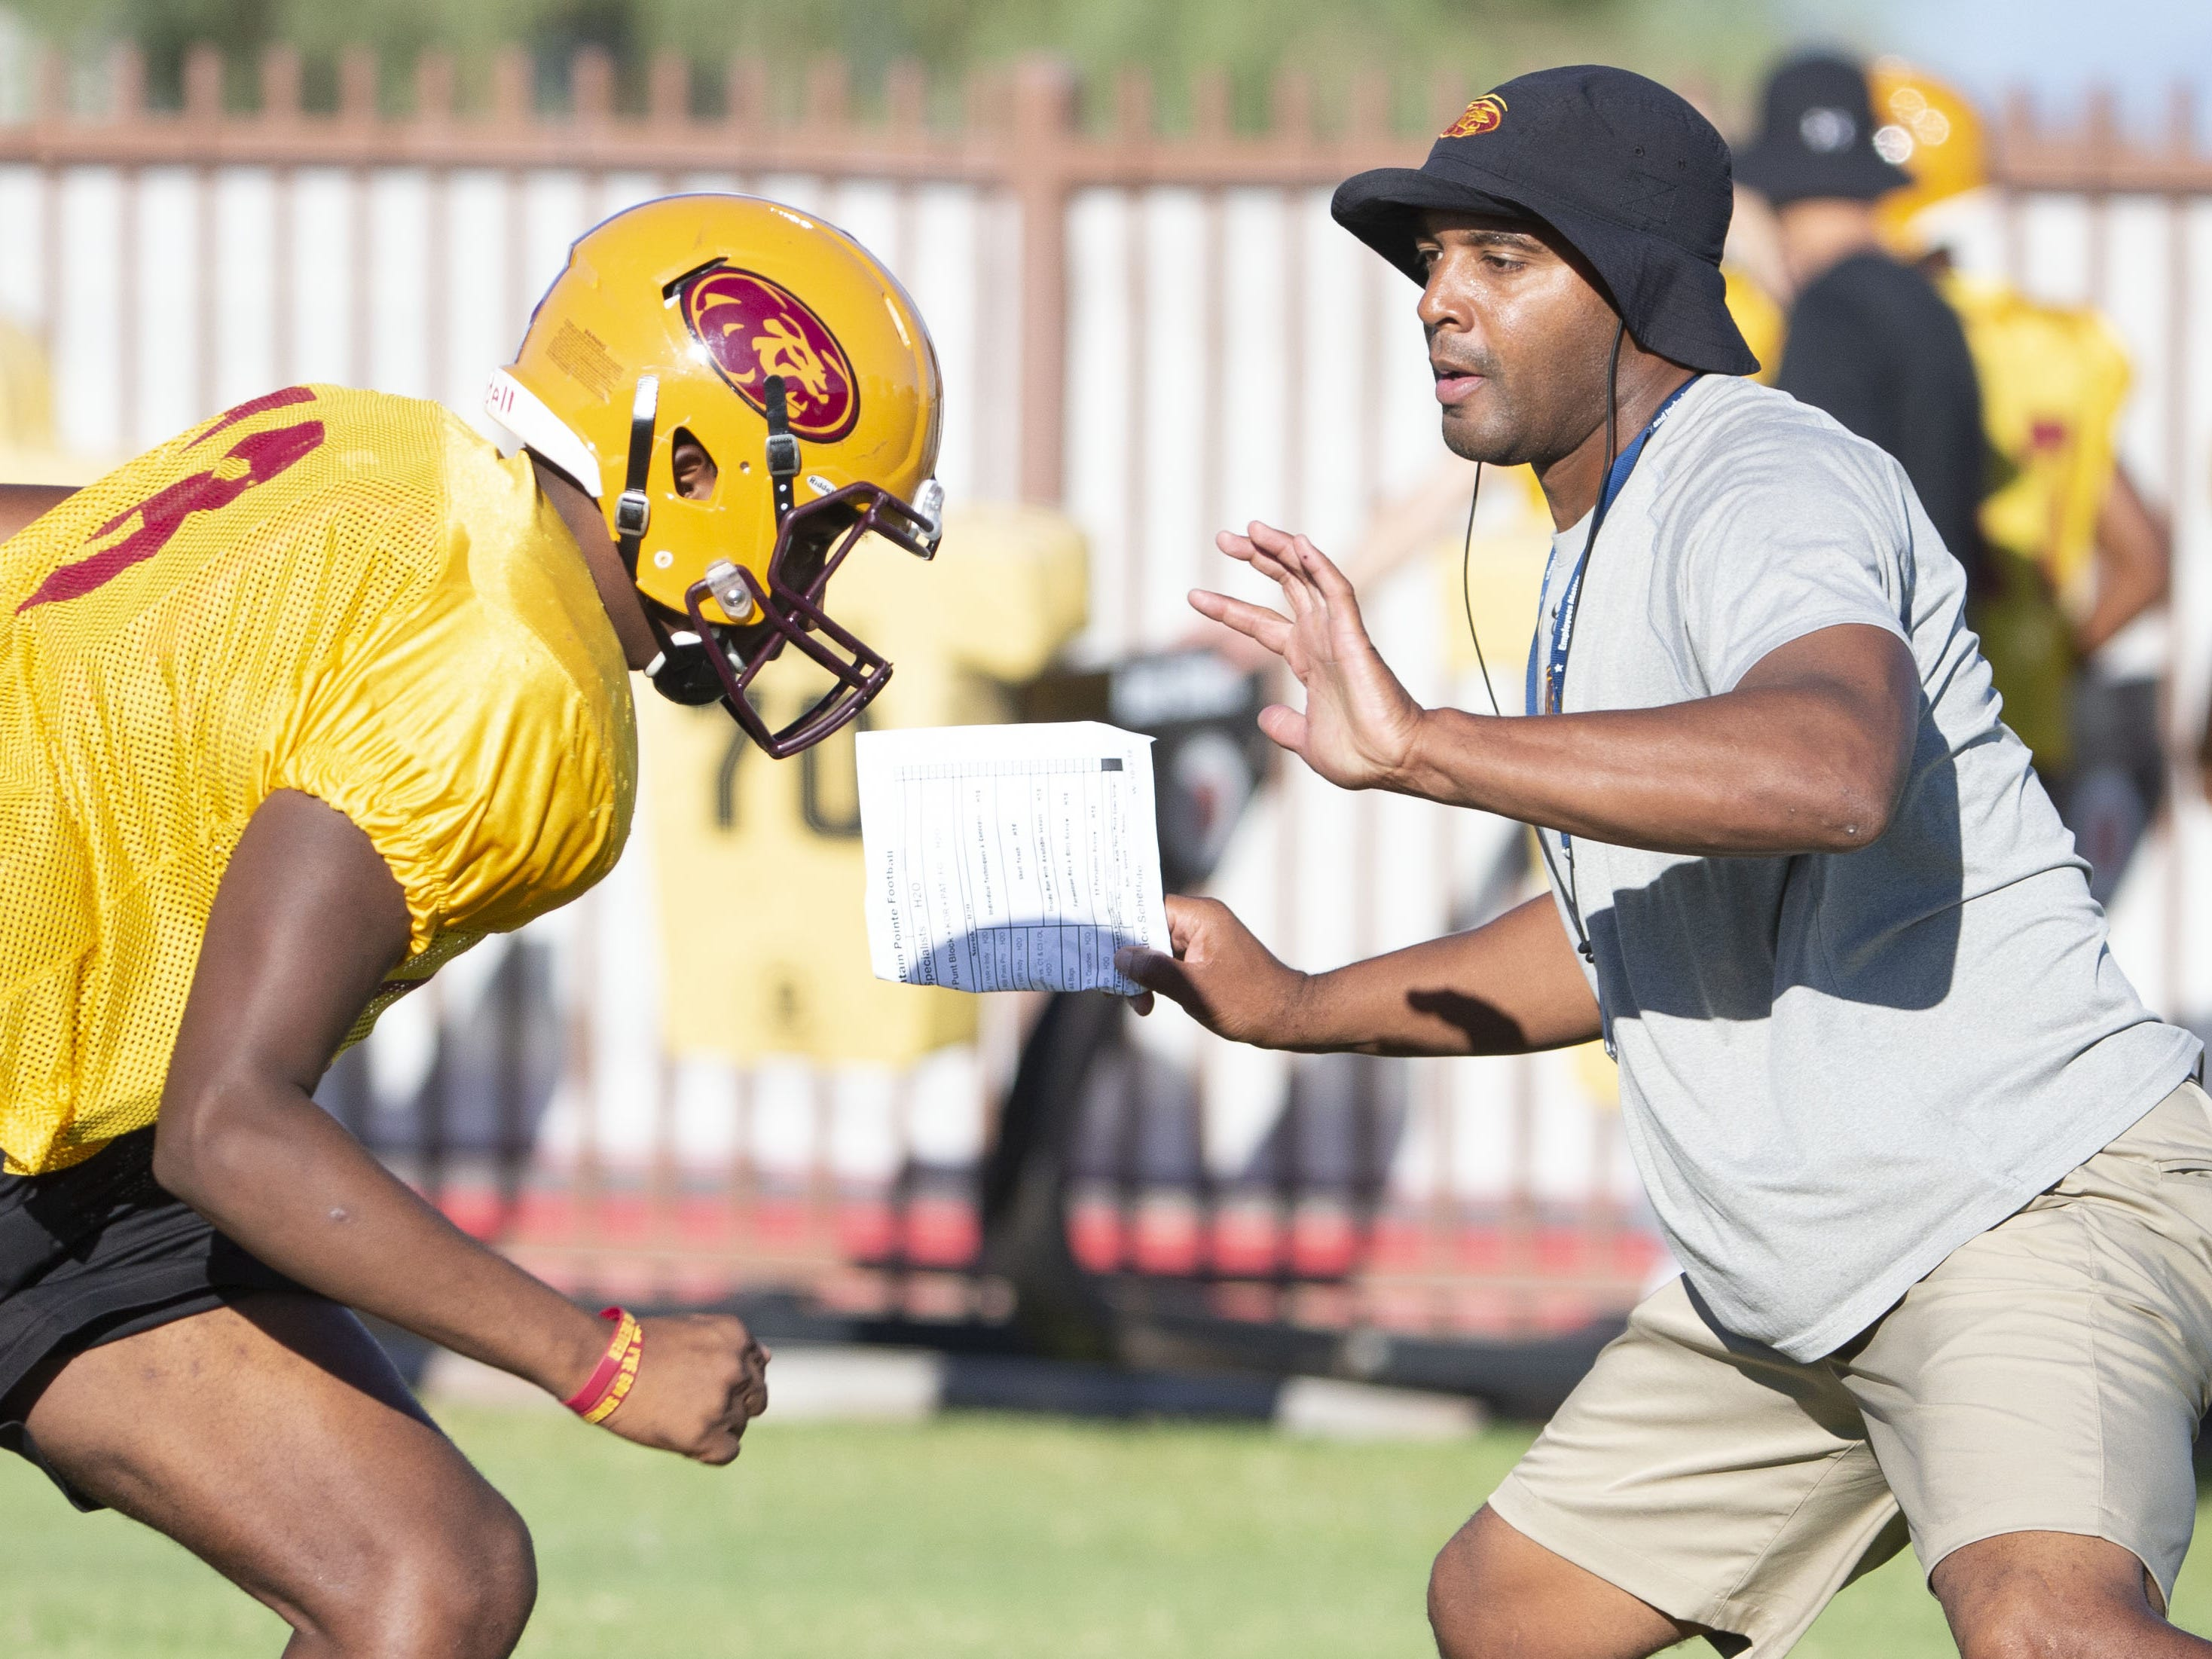 Mountain Pointe's defensive coordinator Conrad Hamilton leads by demonstration during practice in Phoenix on October 3, 2018.